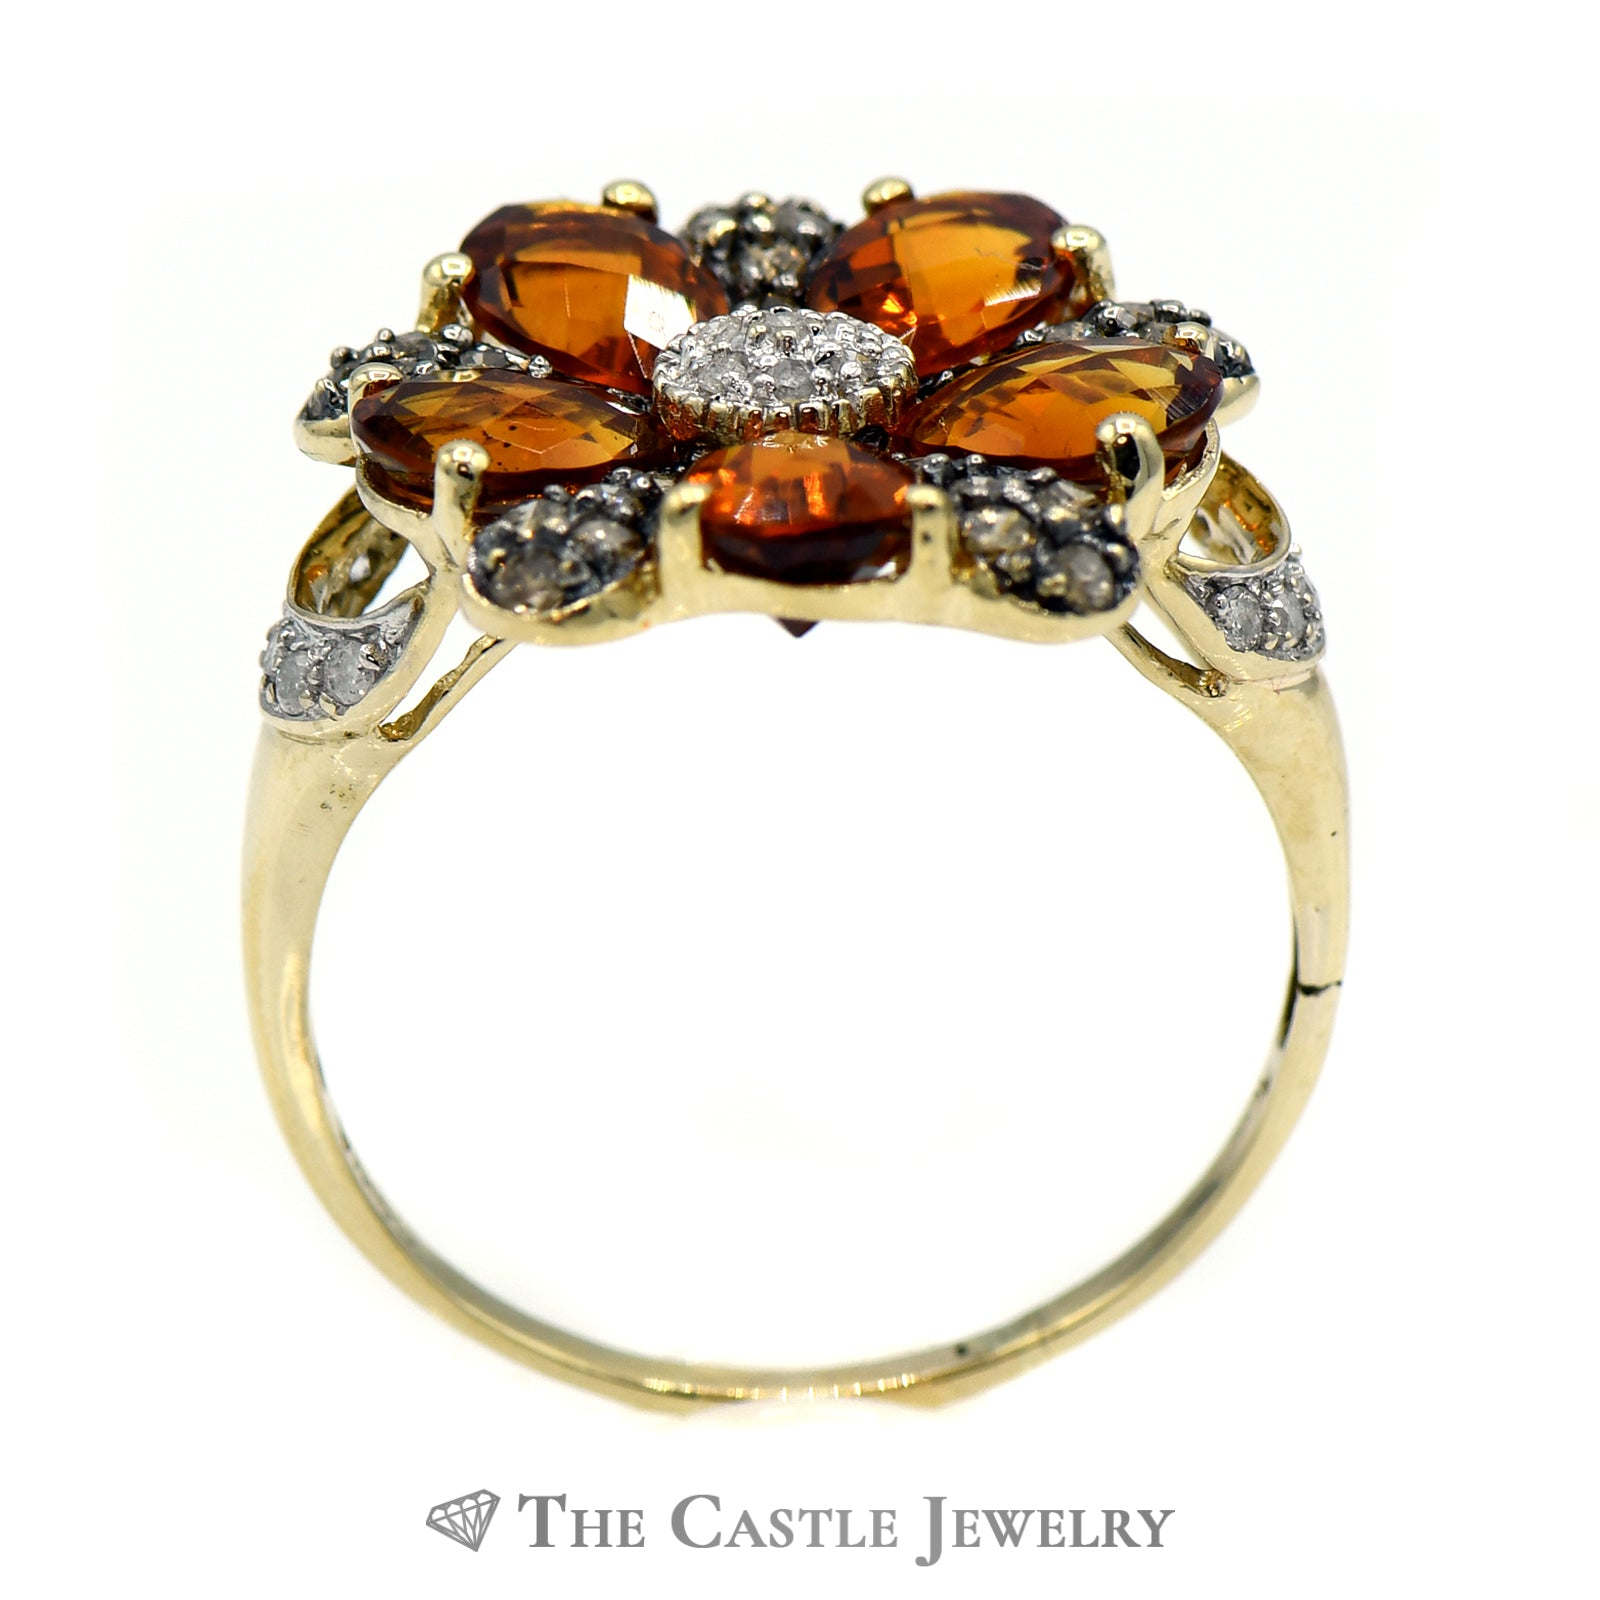 Citrine Flower Cluster Ring with Chocolate & White Diamond Accents in 10k Yellow Gold-1